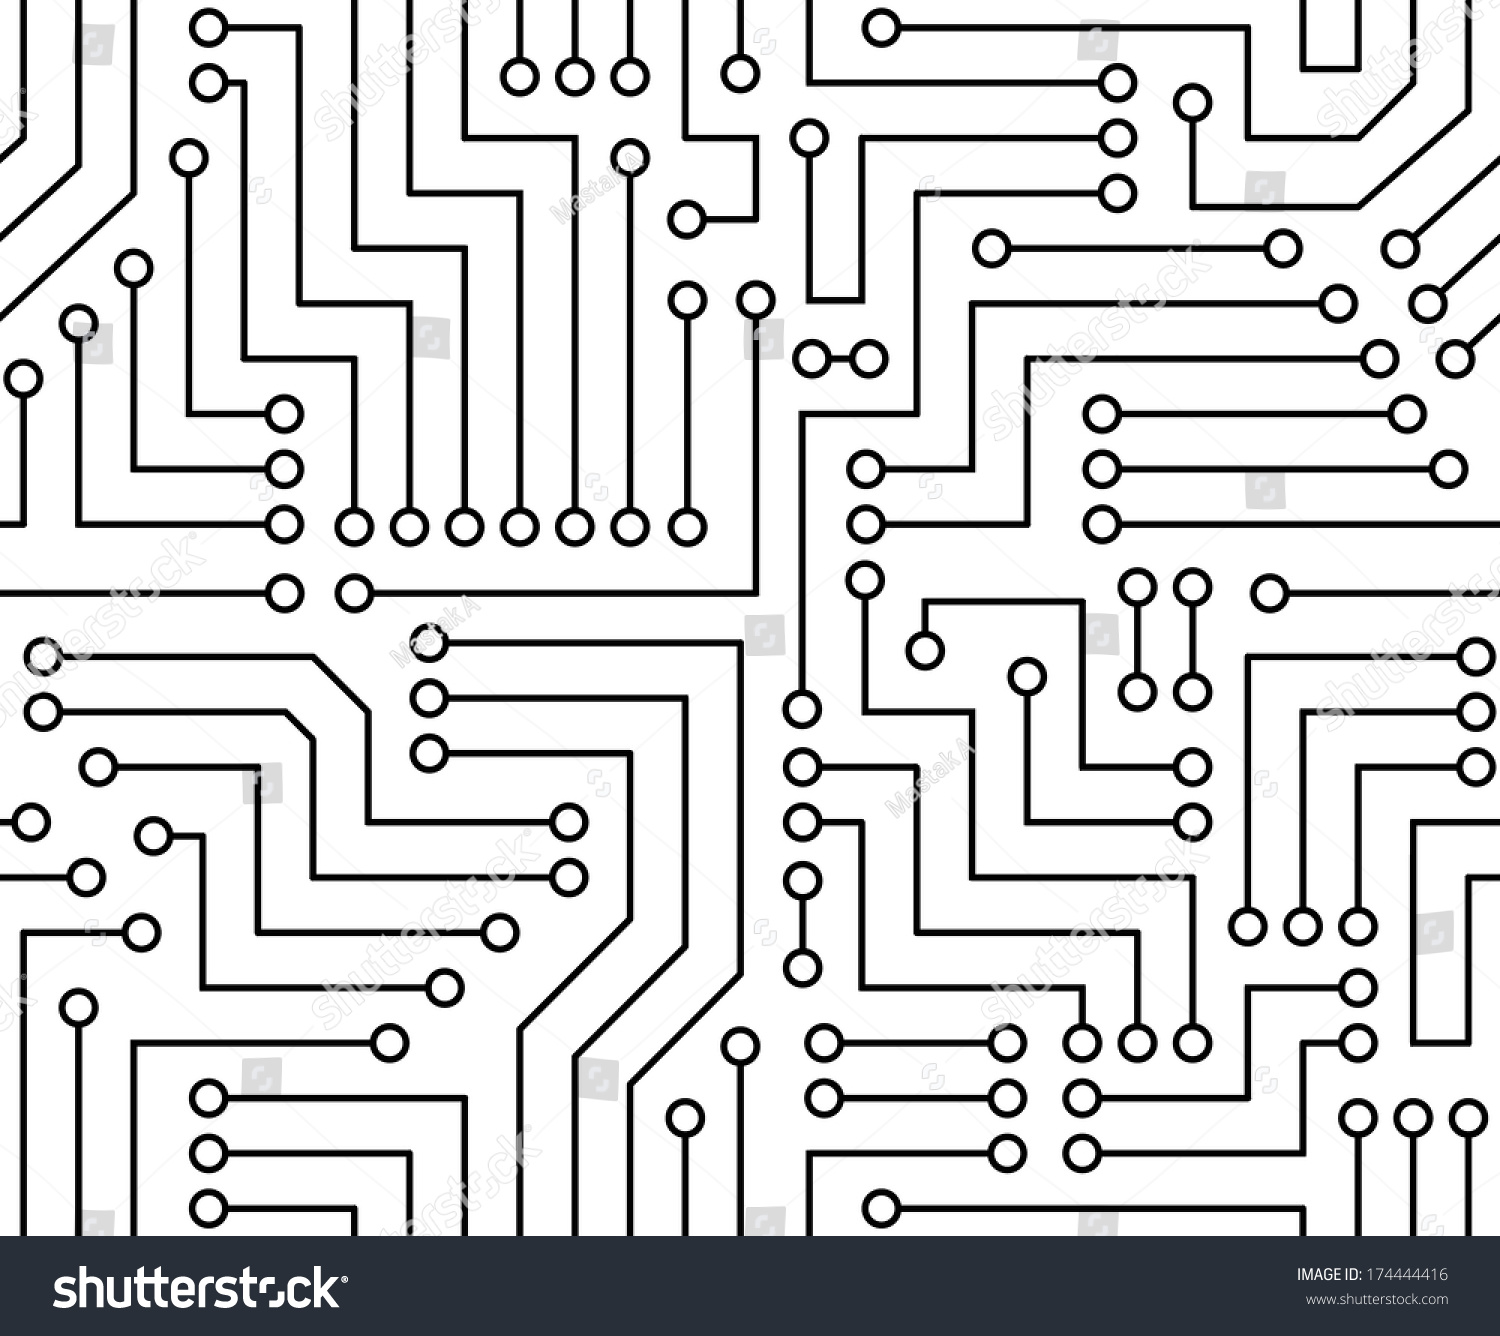 Printed Monochrome Industrial Circuit Board Background Auto Royalty Free Stock Image 24974606 Black White Seamless Vector